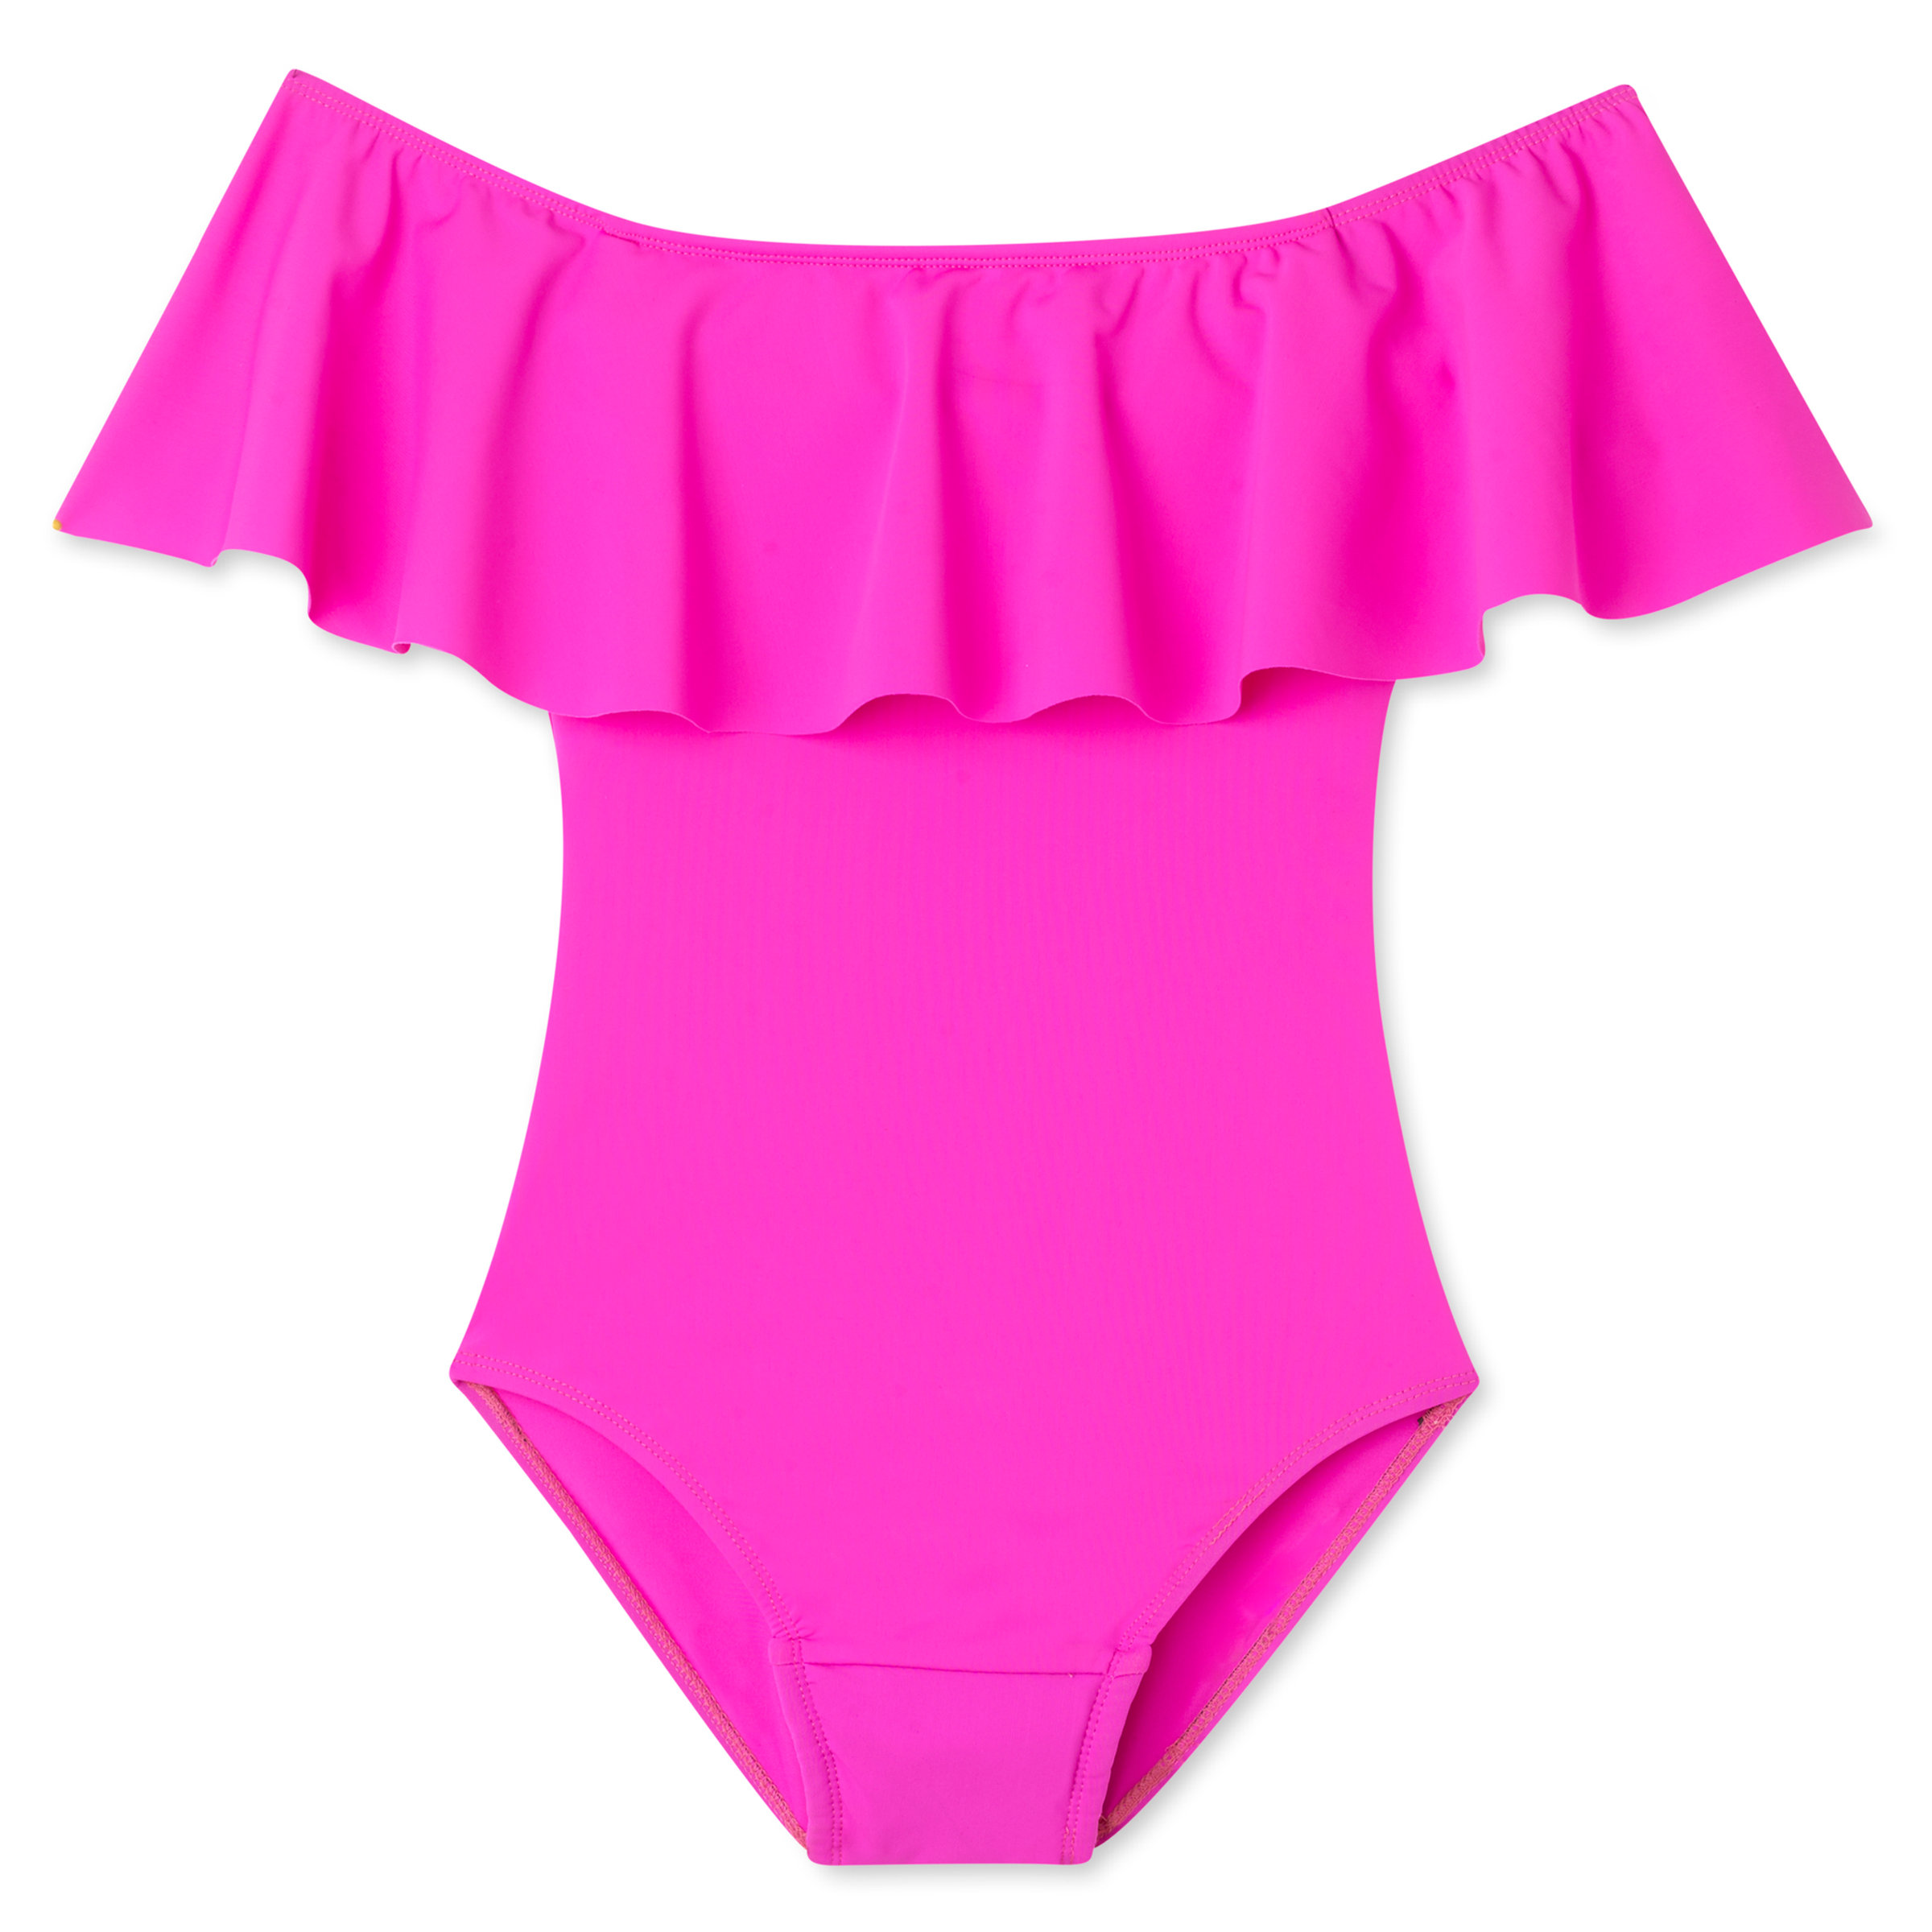 The Period Swimwear Off the Shoulder | French Riviera travel product recommended by Megan Zuckerman on Pretty Progressive.